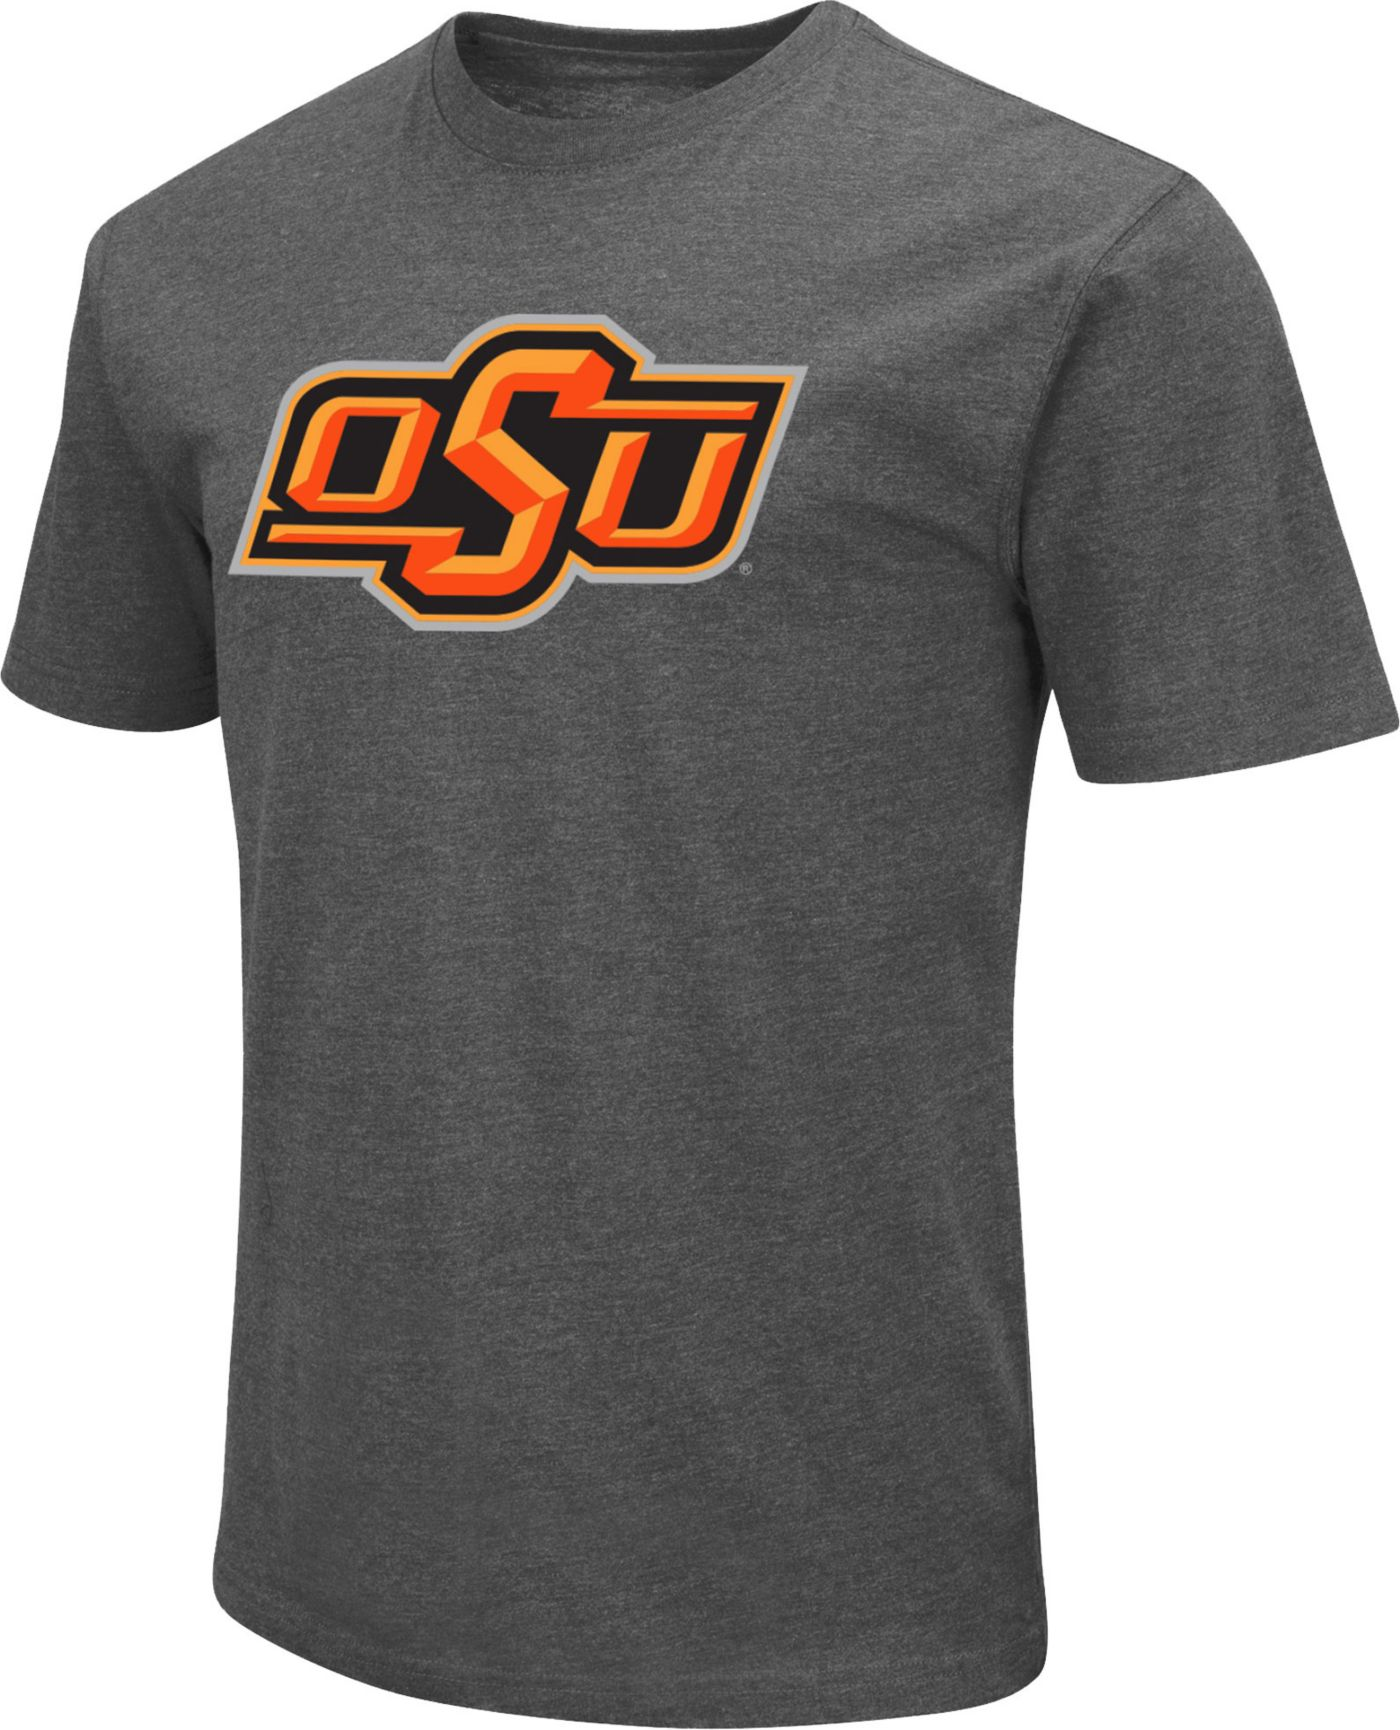 Colosseum Men's Oklahoma State Cowboys Grey Dual Blend T-Shirt